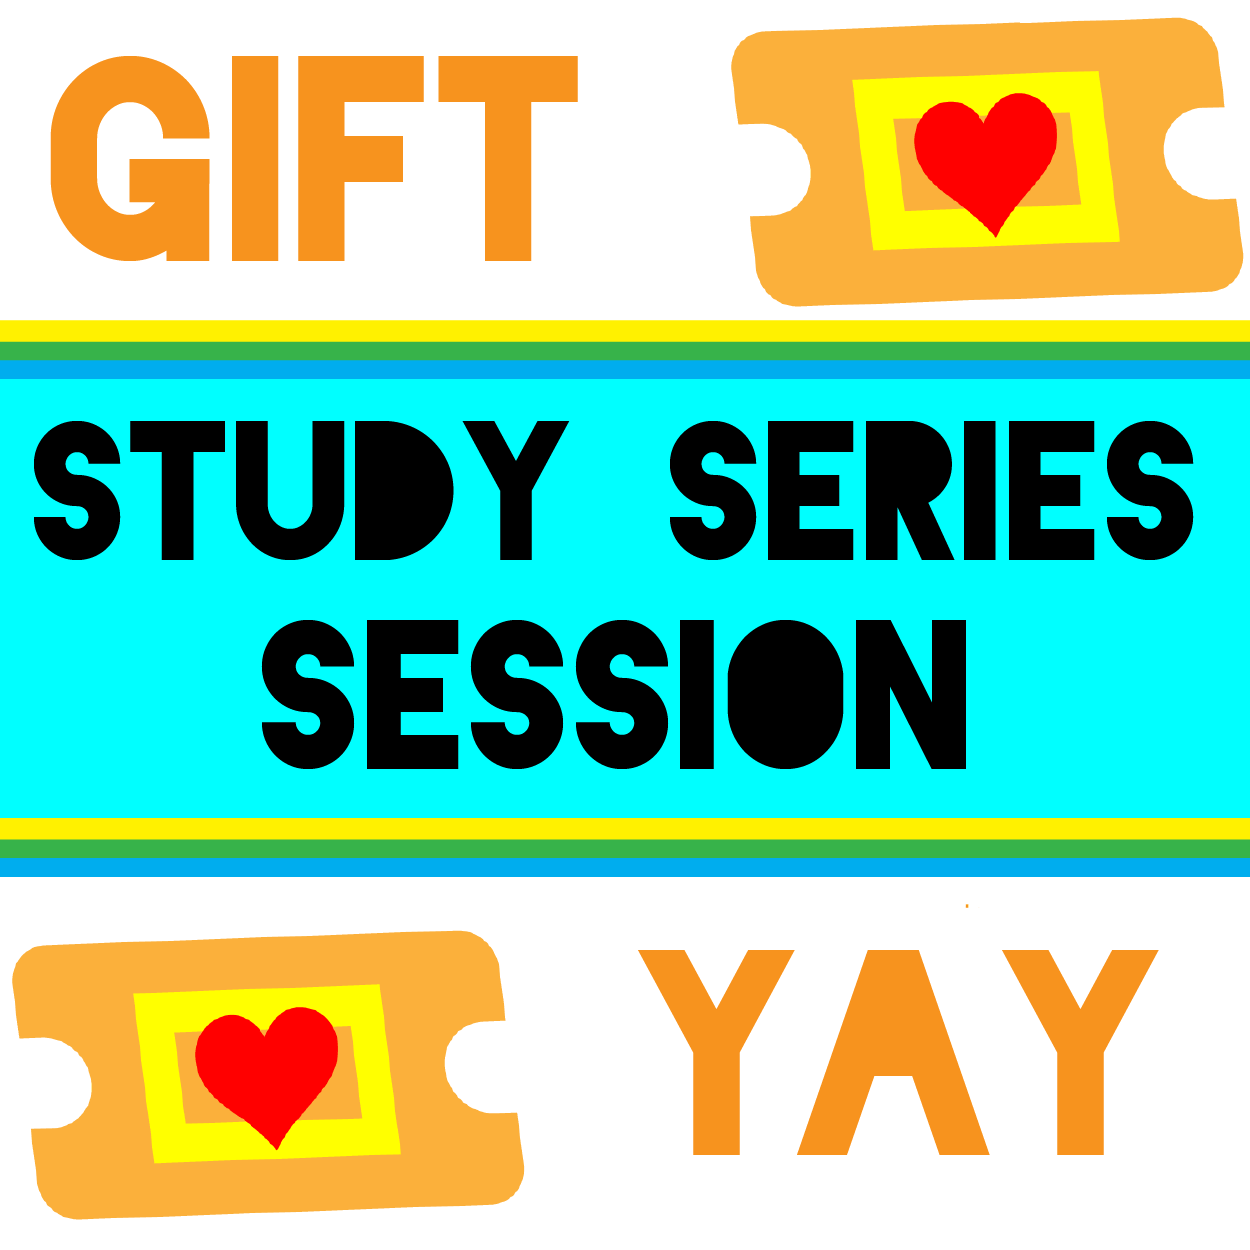 Gift of a Study Series Session